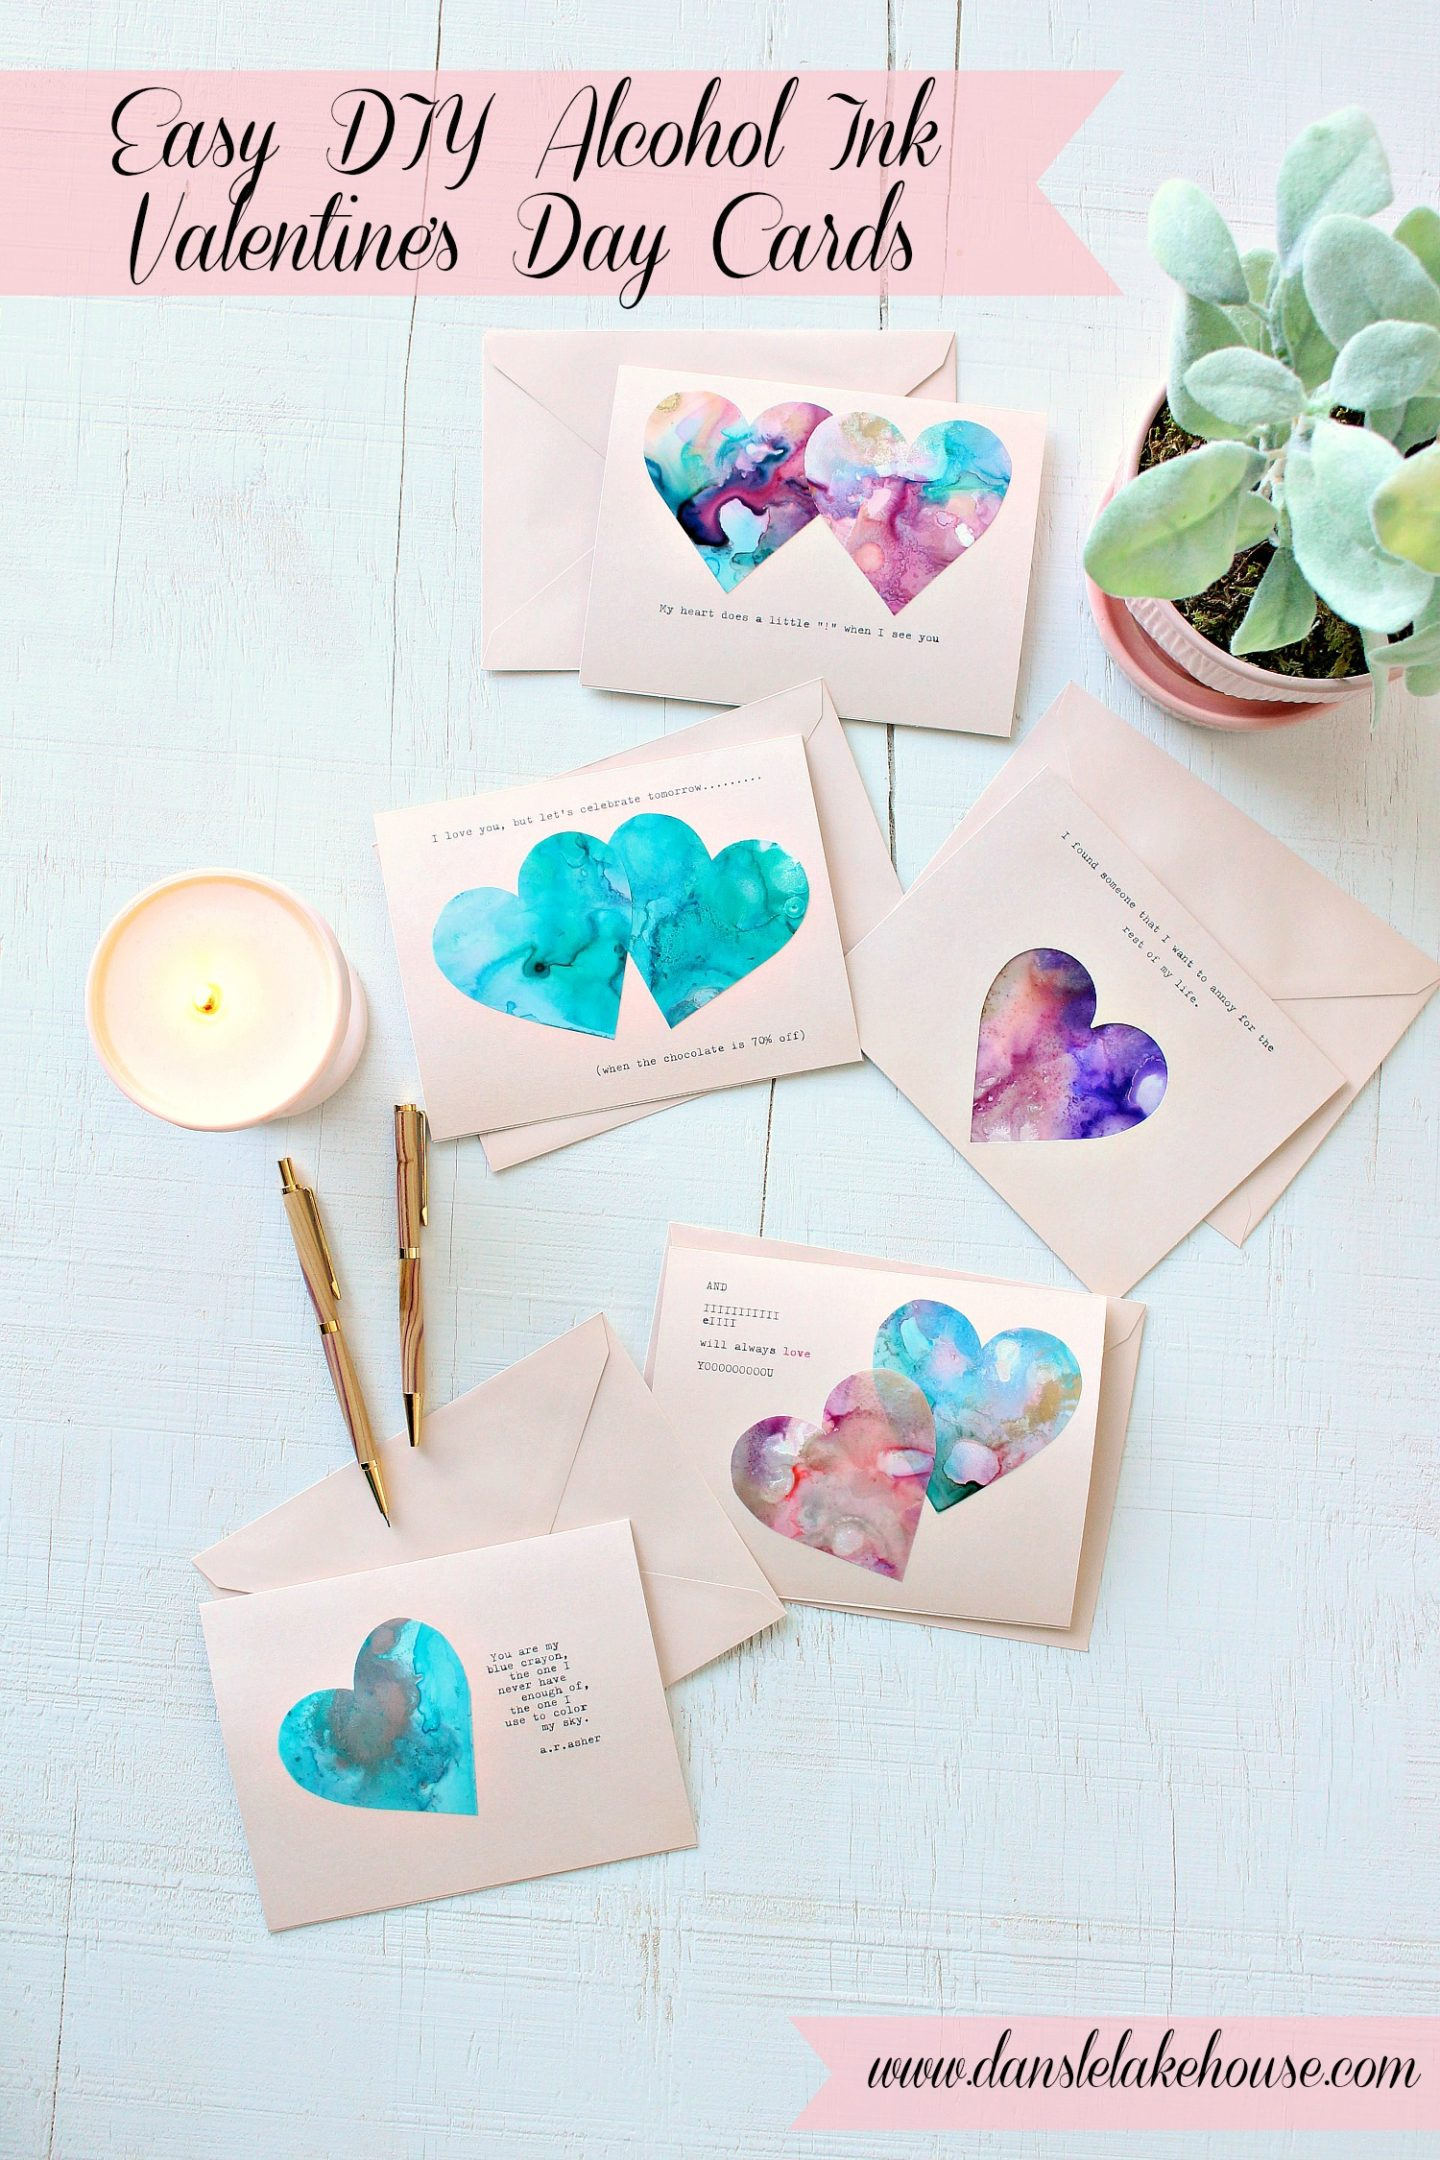 Easy DIY Valentine's Day Cards Made with Alcohol Inks